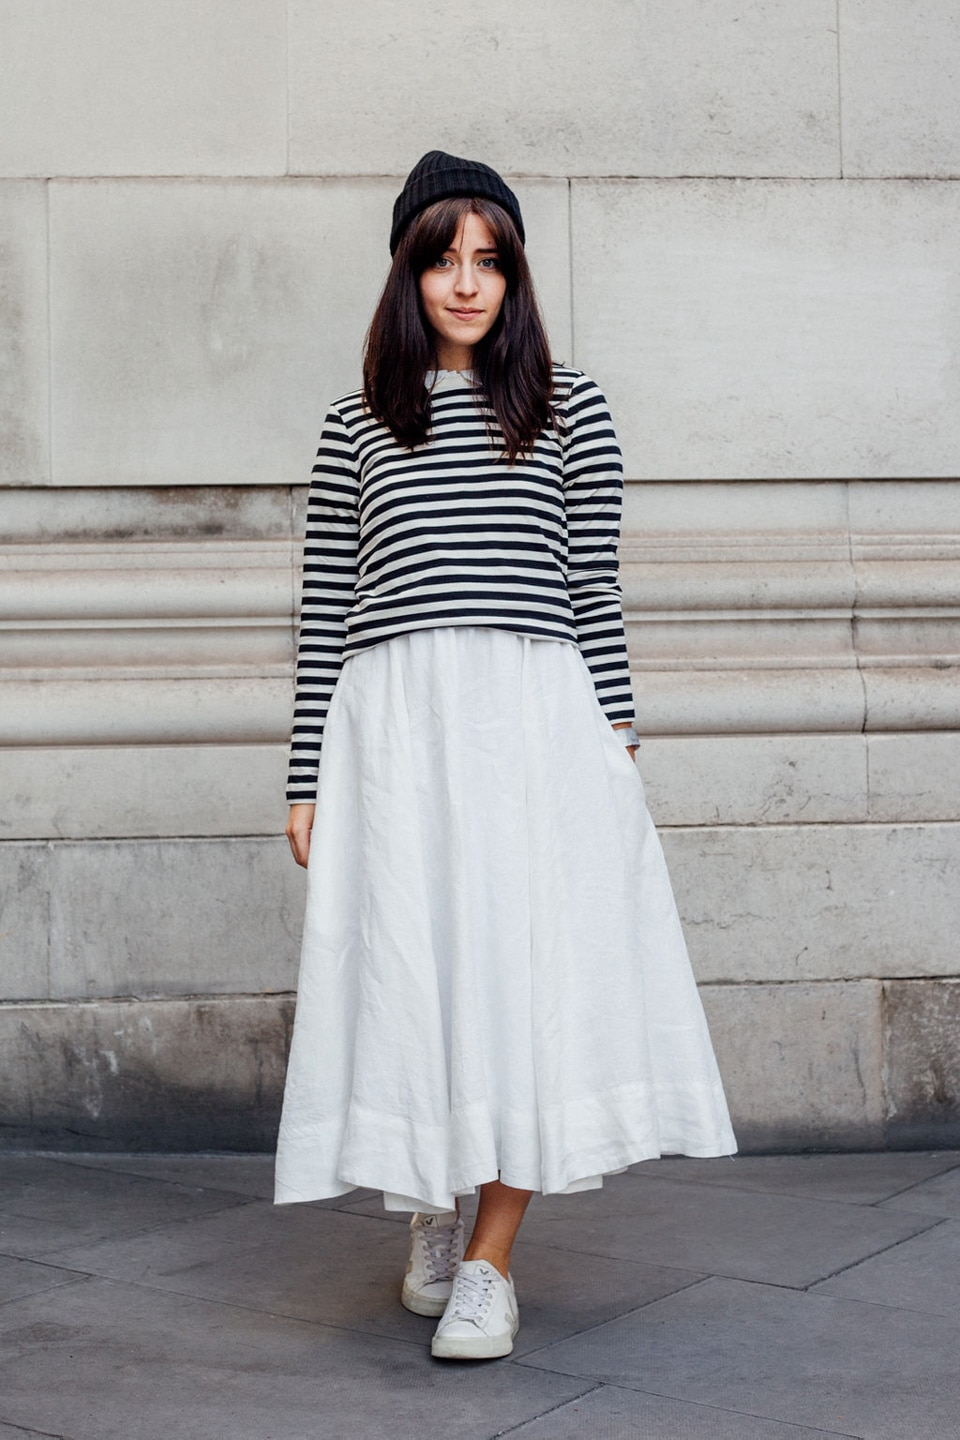 Besma wears white dress with striped pullover